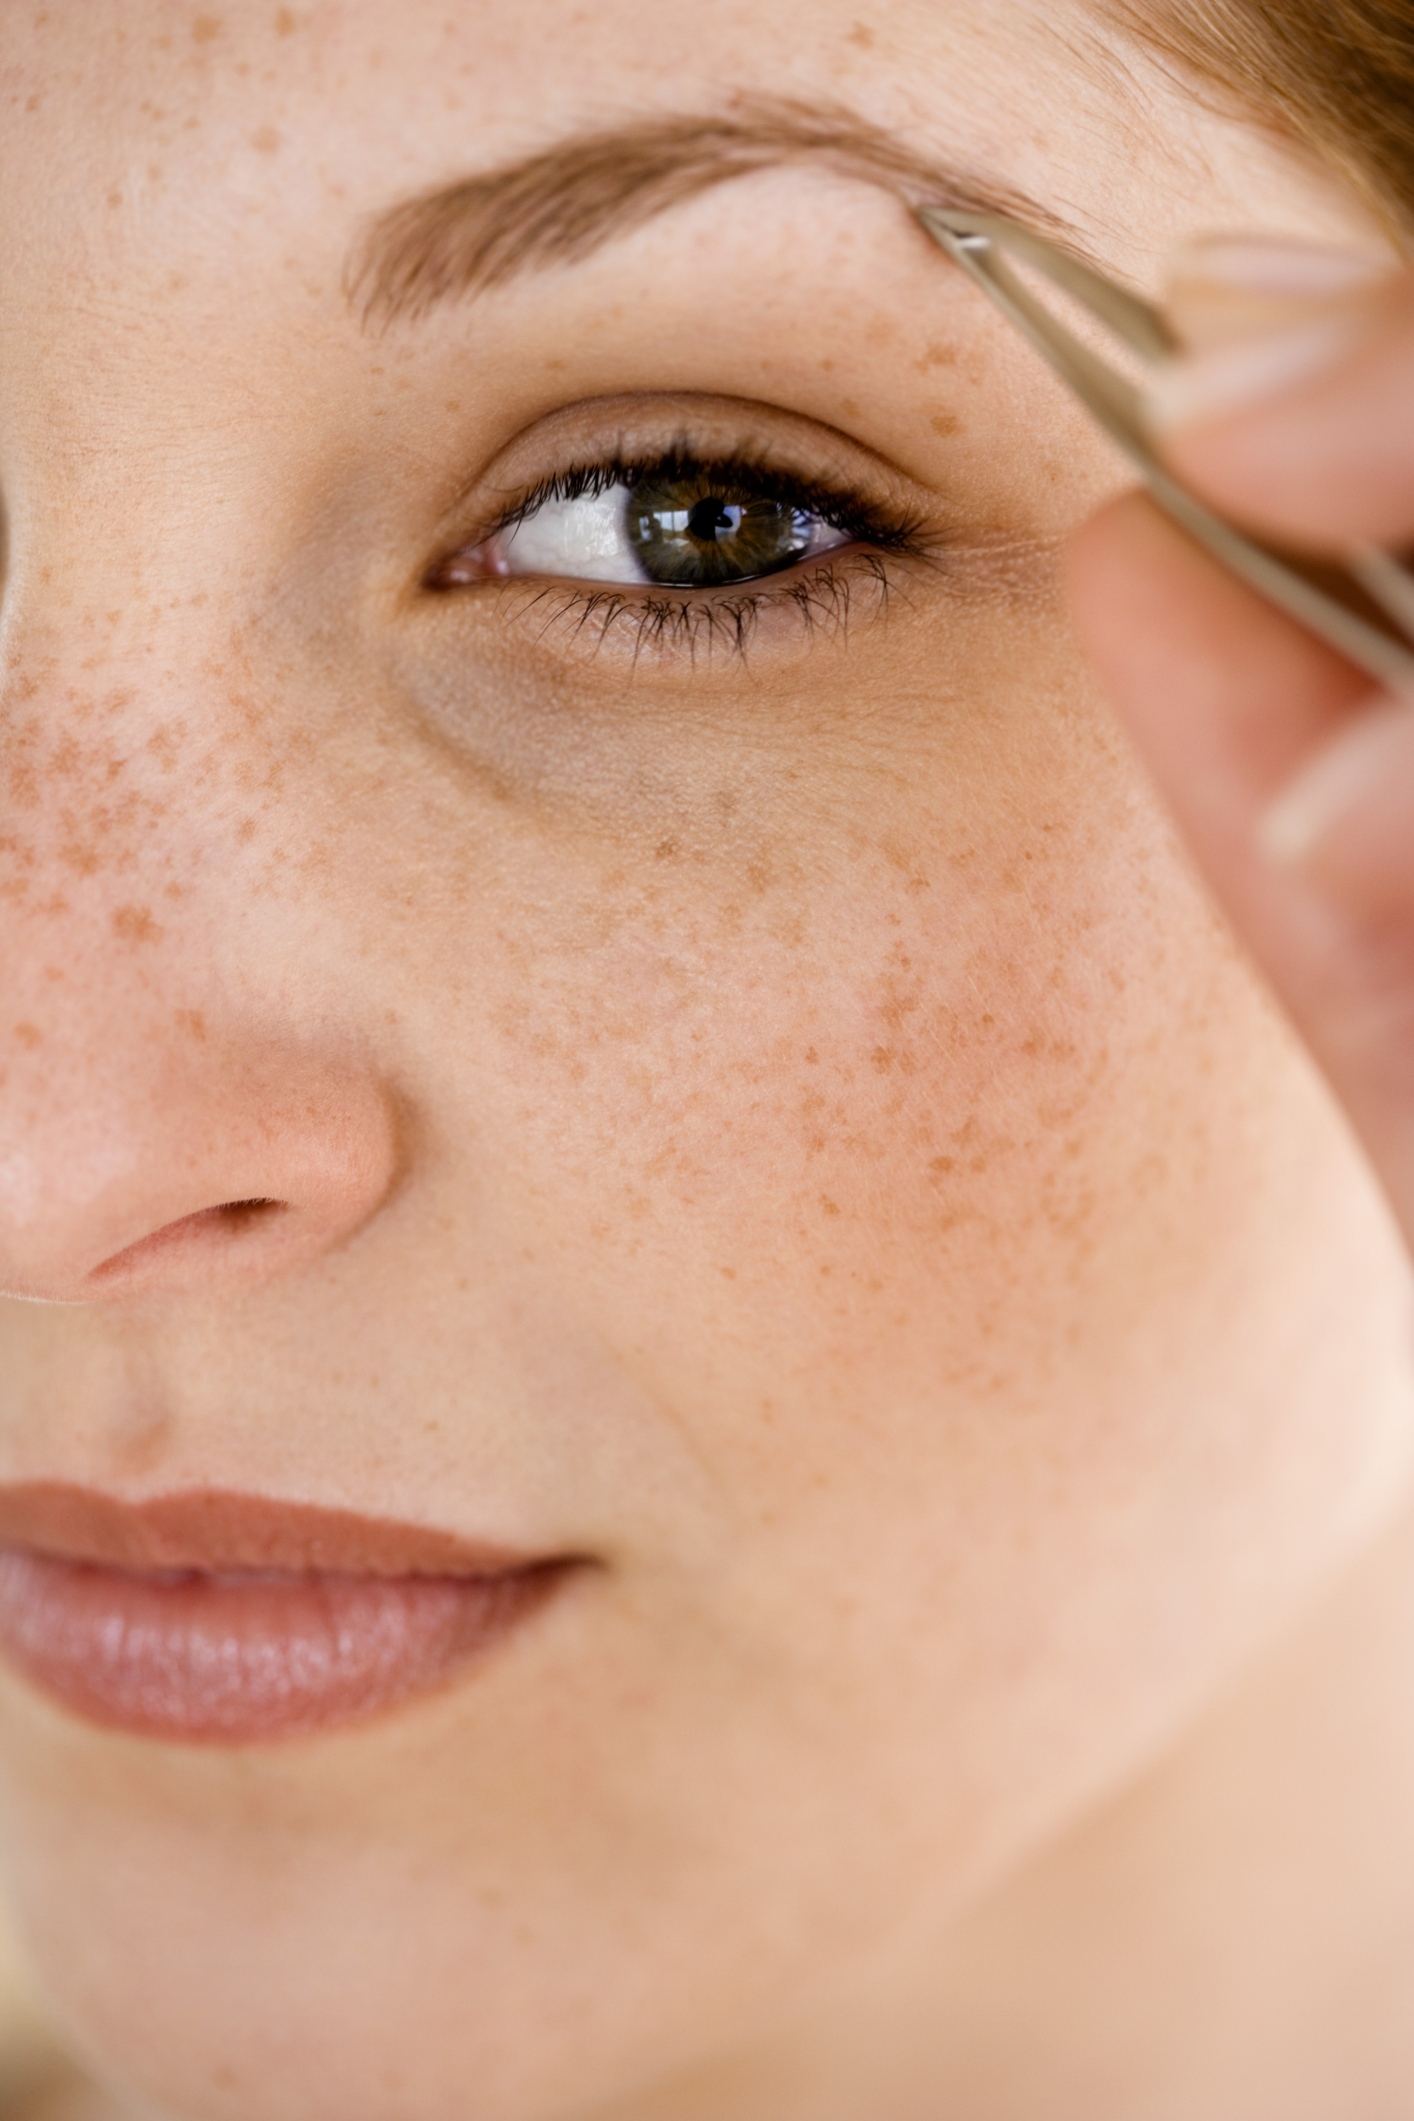 How to Get Rid of Eyebrow Hair Without Tweezers | LEAFtv